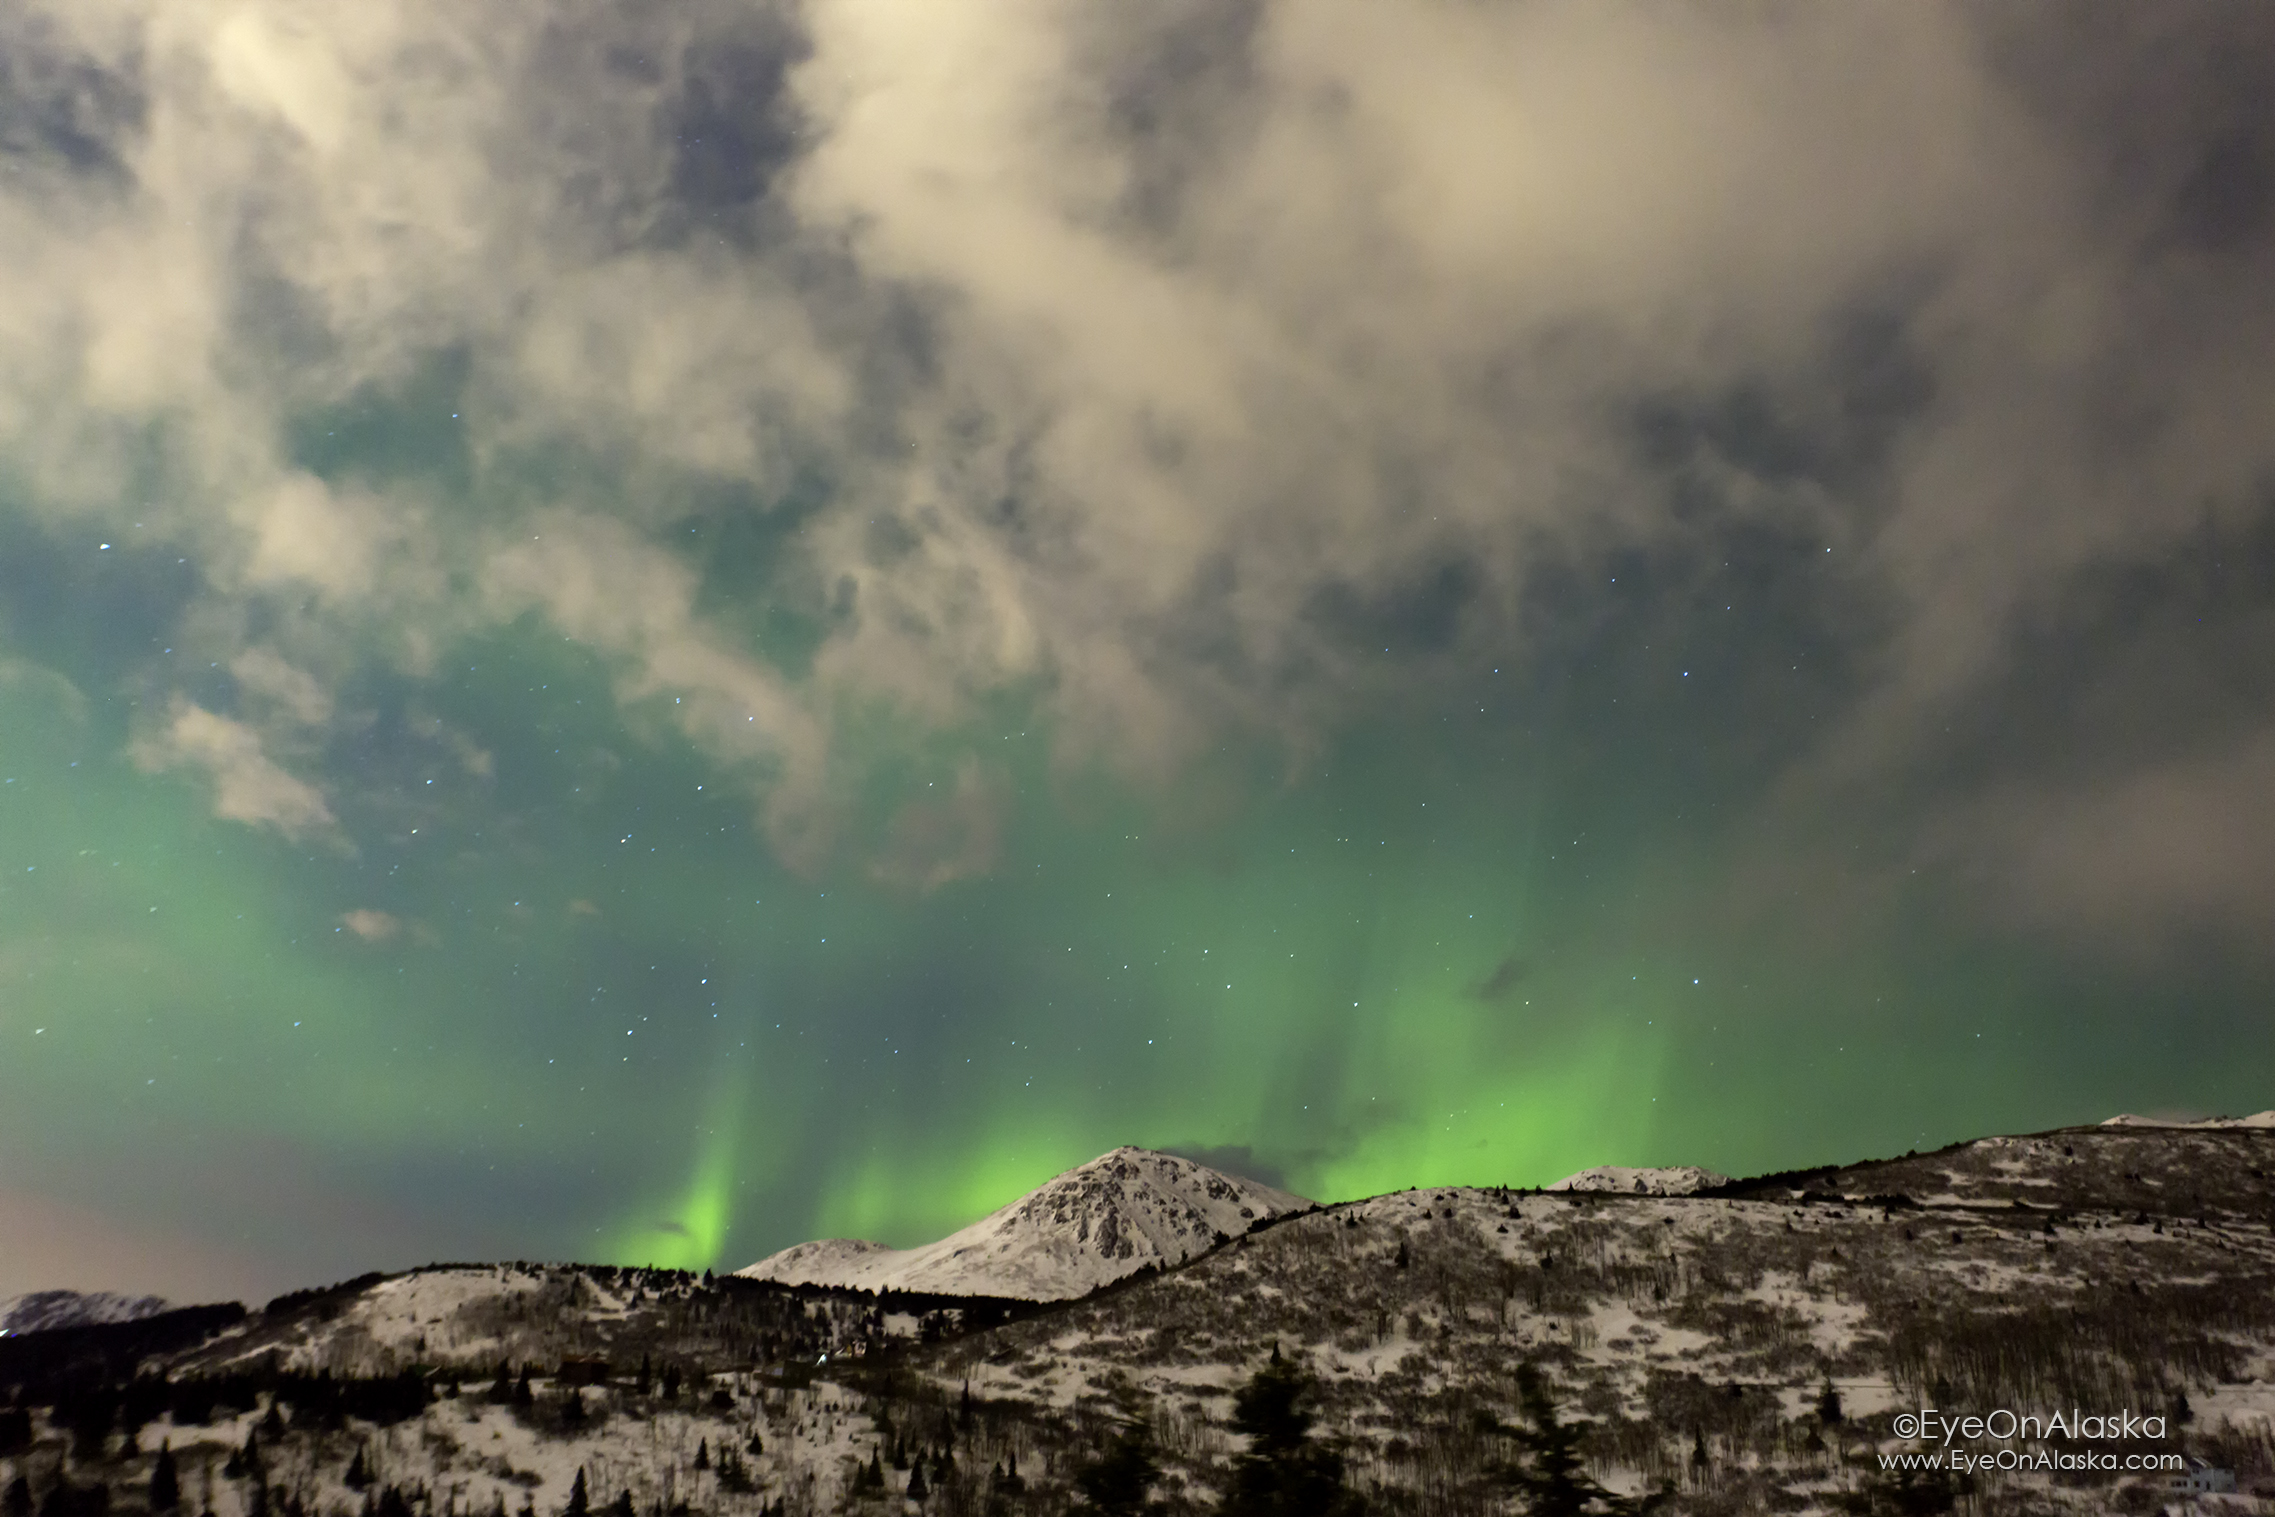 Wasn't expecting to see any aurora, but the clouds opened up for just a short time.